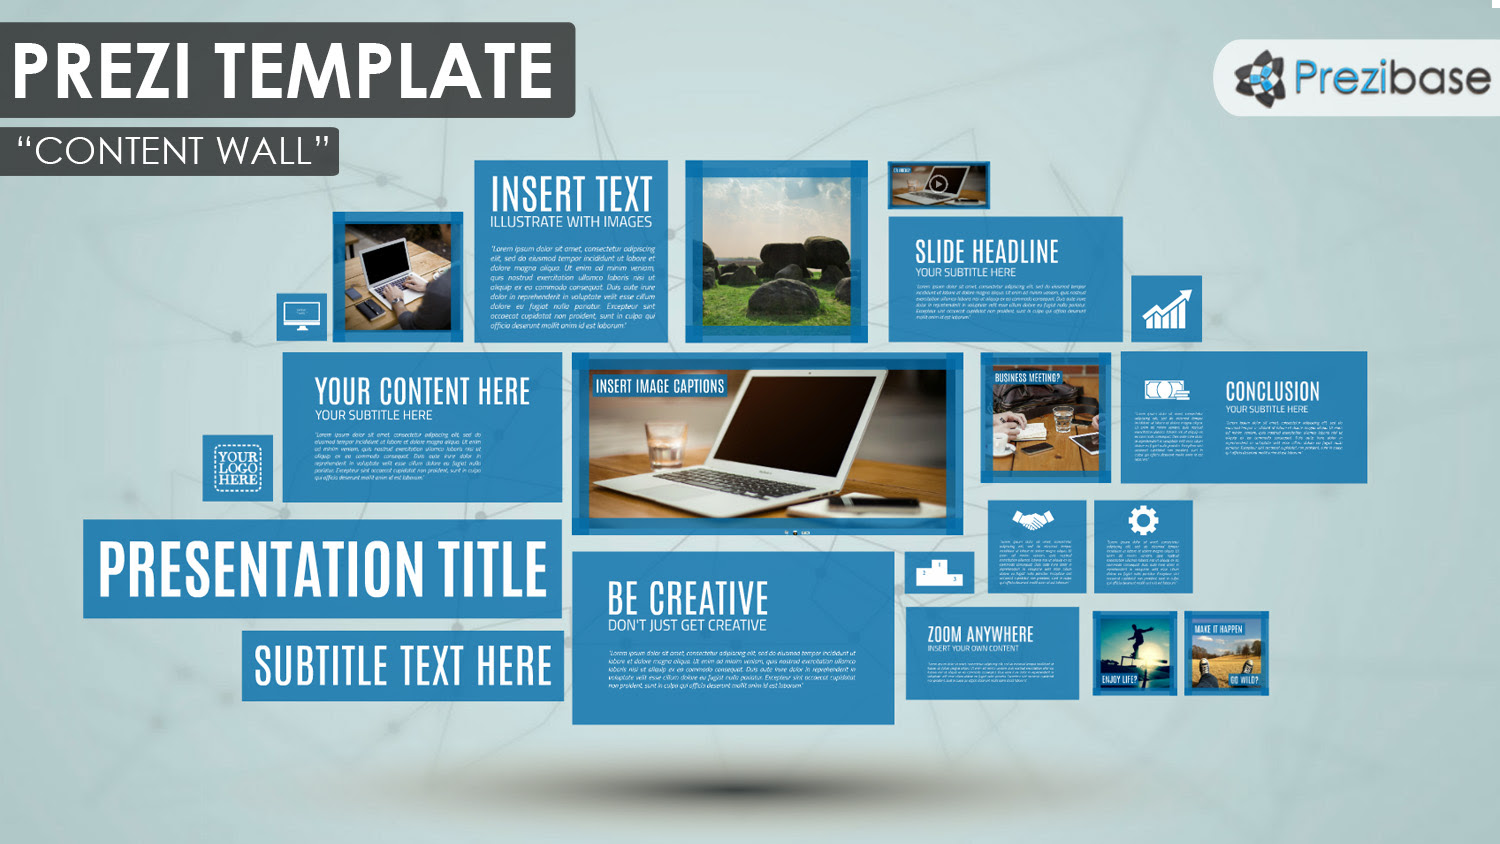 content wall creative tiles rectangles windows simple professional prezi templateS